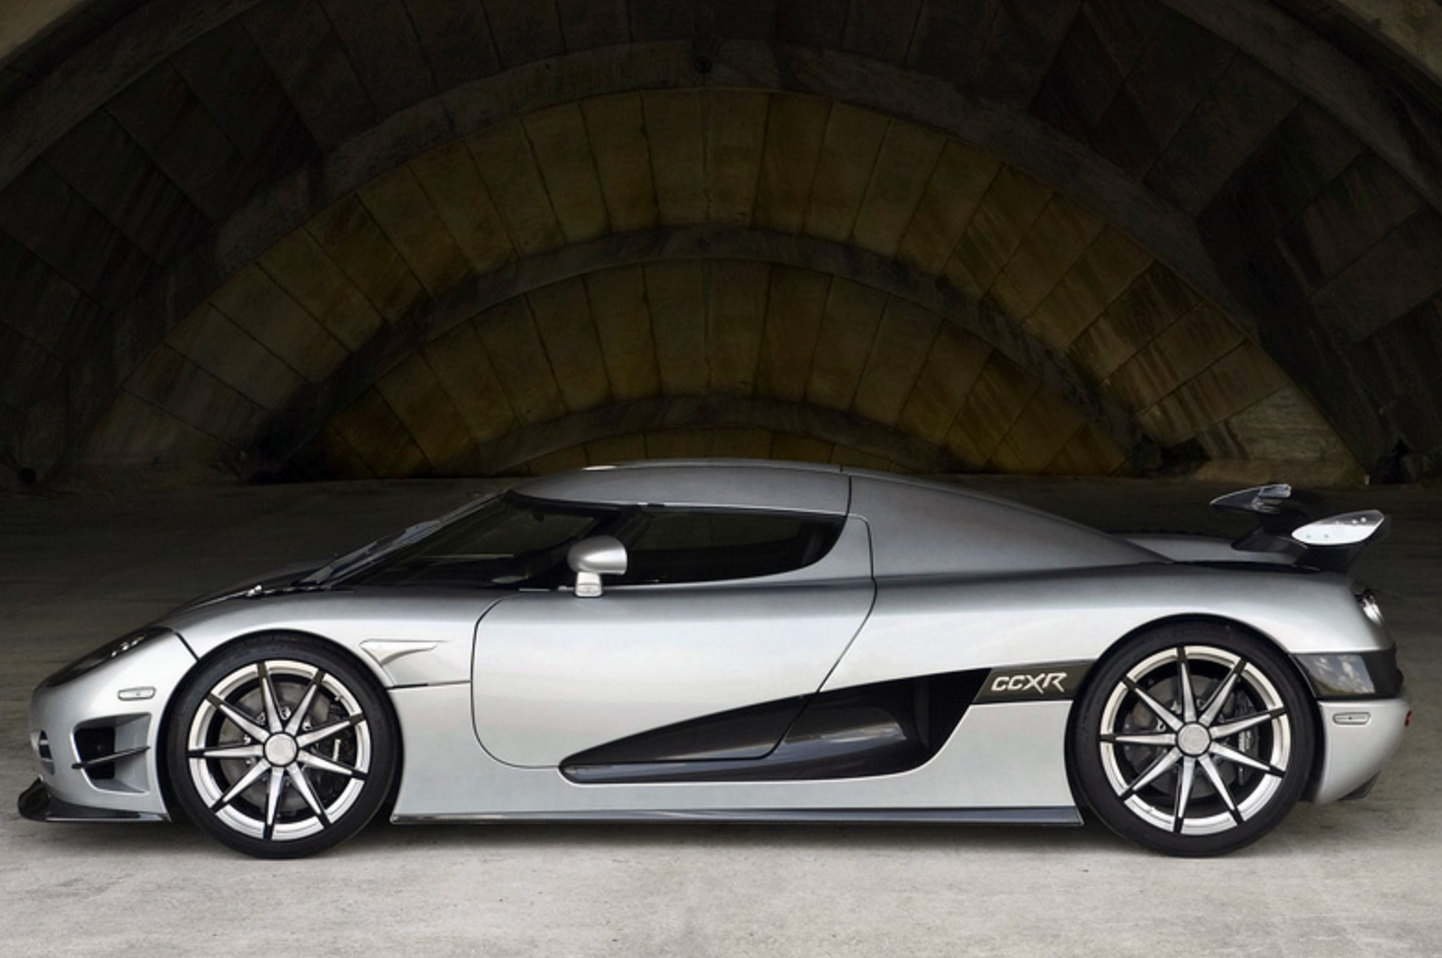 100 Koenigsegg Car Price Koenigsegg Reveals Regera Customer Cars The Drive Last Ever